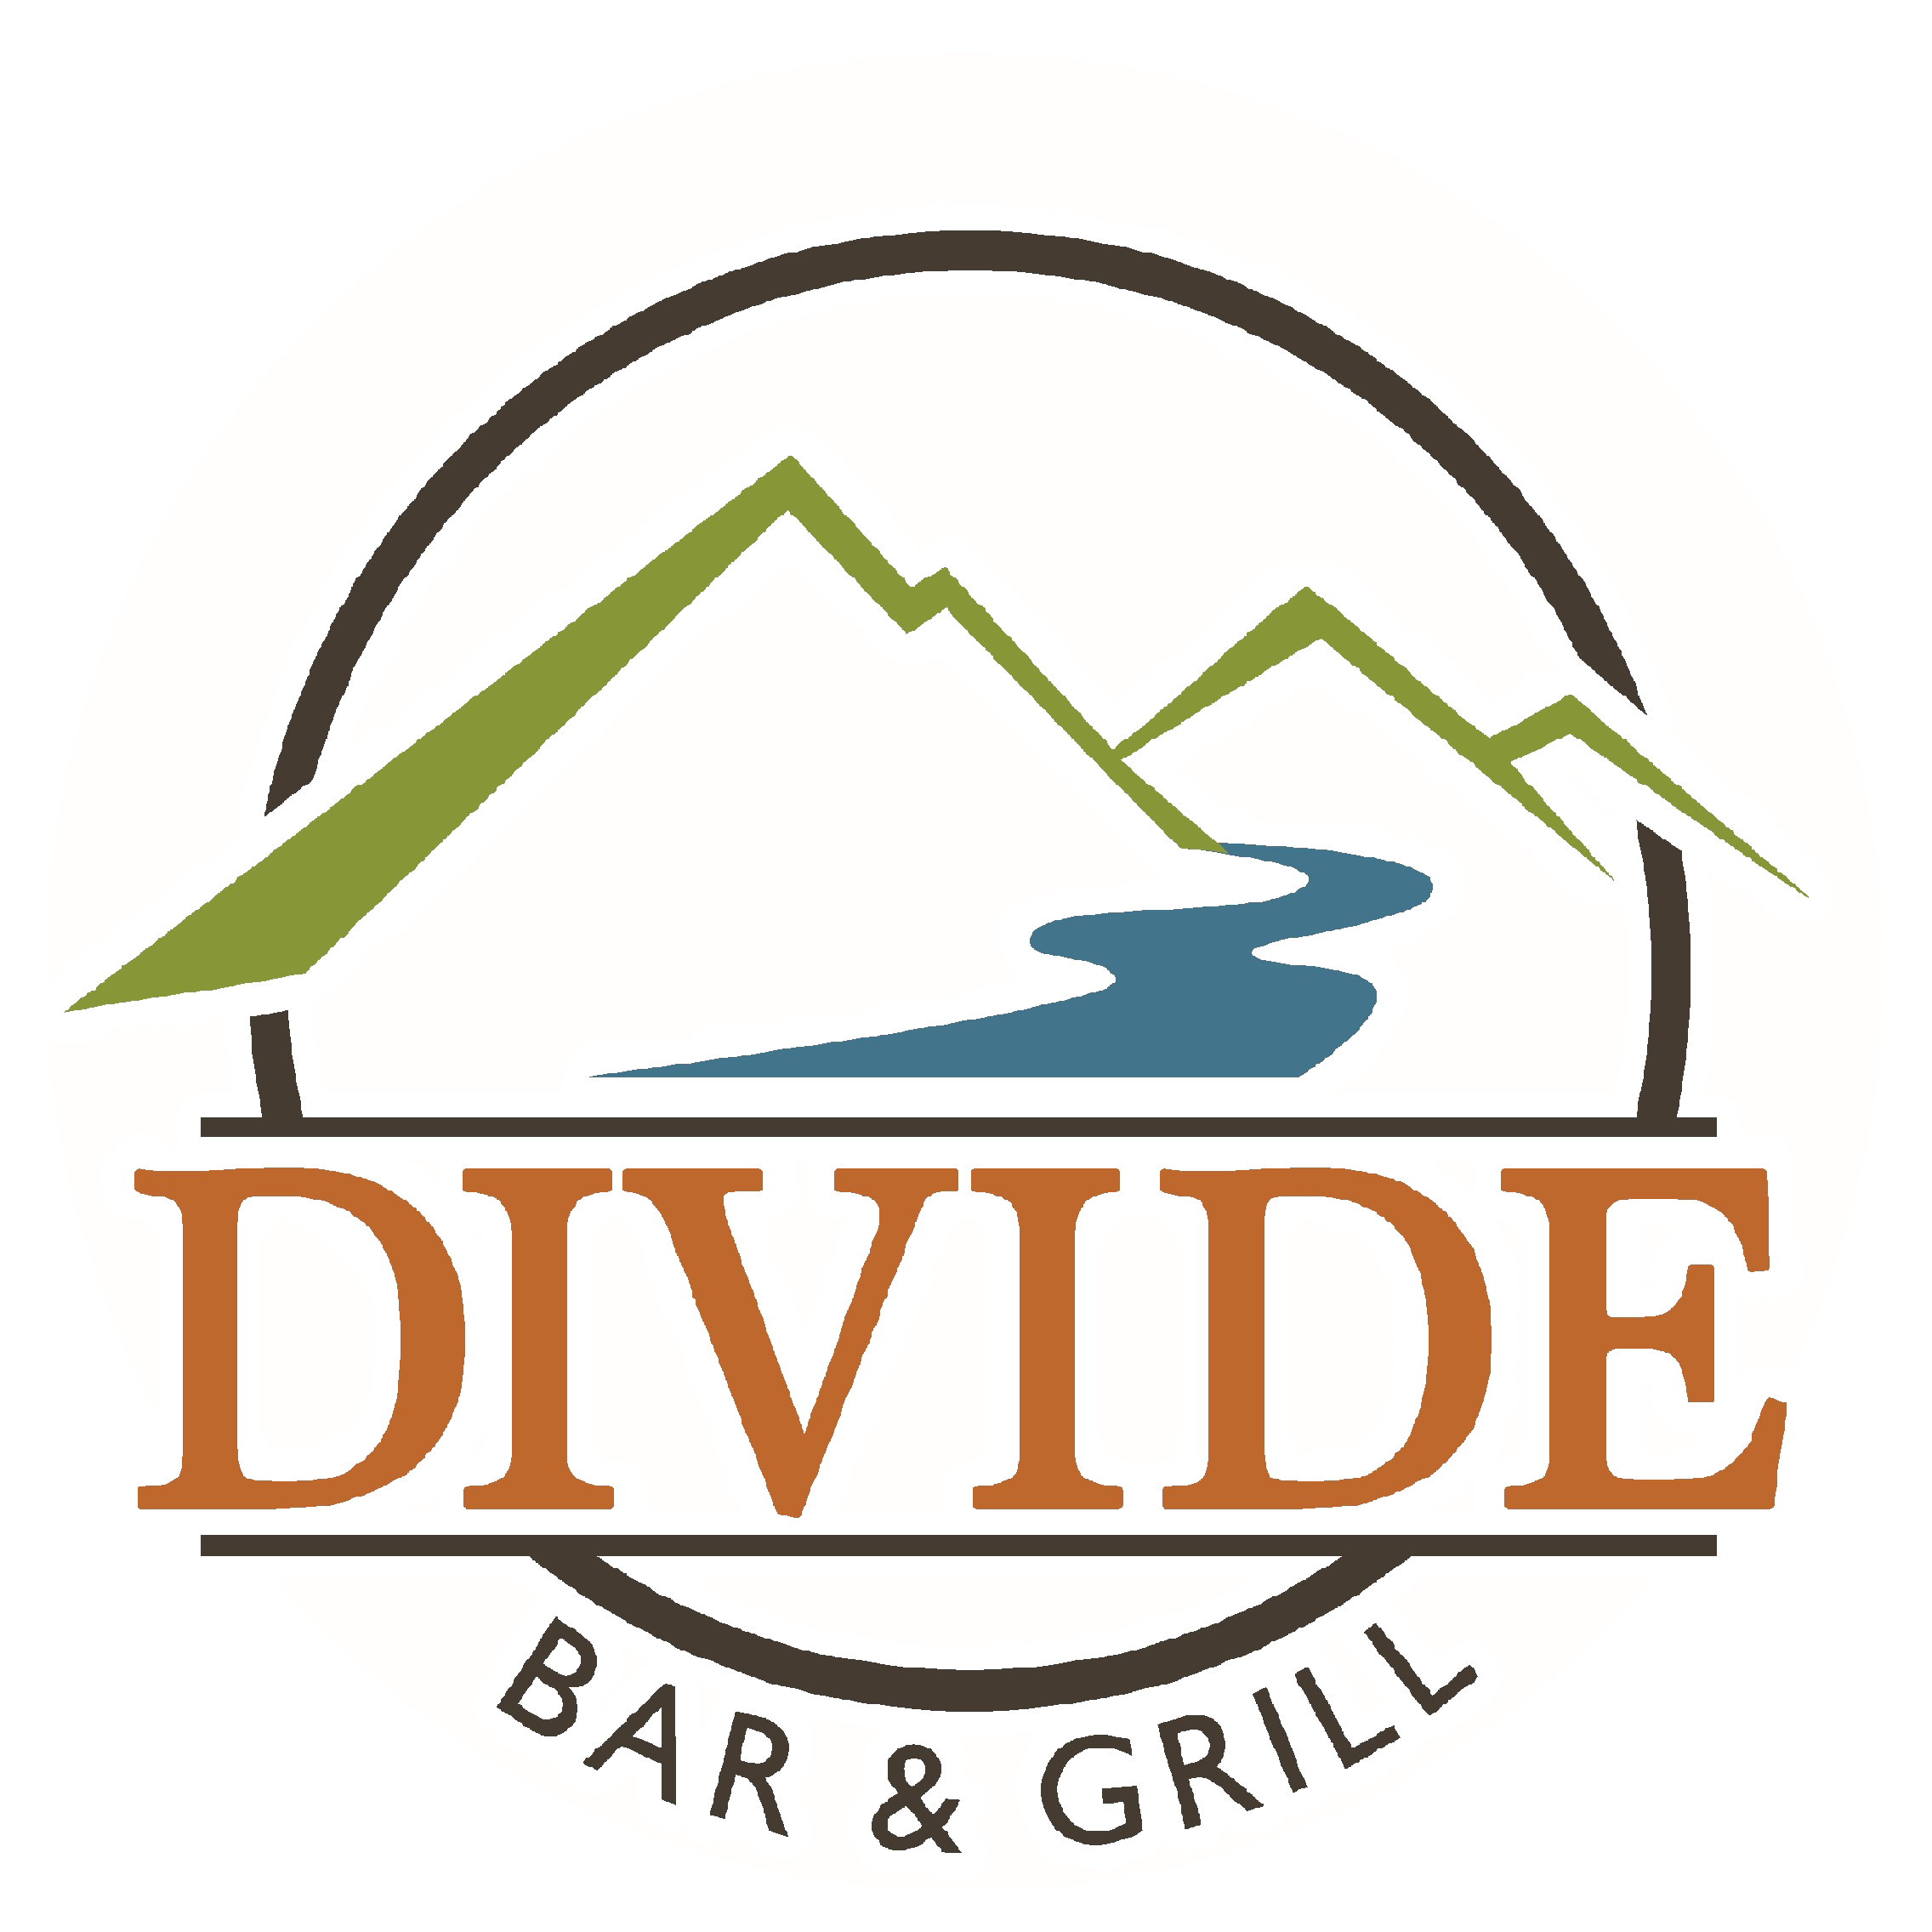 The Divide Bar & Grill